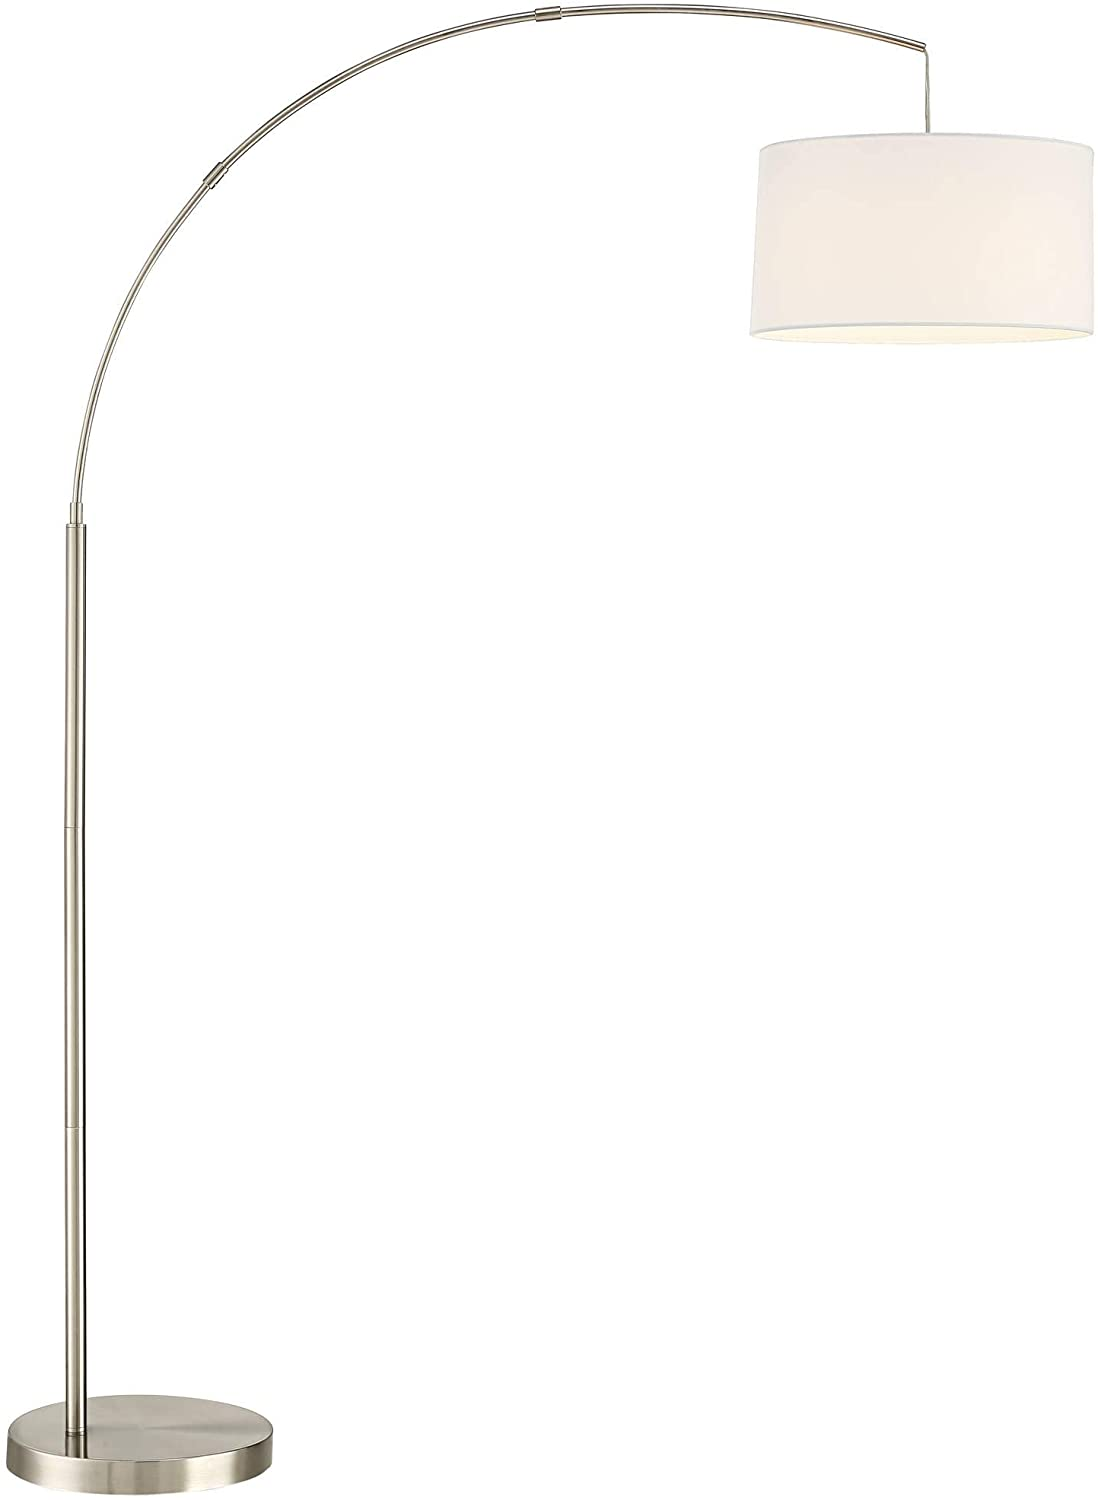 Cora Modern Contemporary Tall Arched Task Lamp Floor Standing Brushed Nickel Silver Off White Linen Fabric Drum Shade For Living Room Reading House Bedroom Home Decor Office 360 Lighting Amazon Com